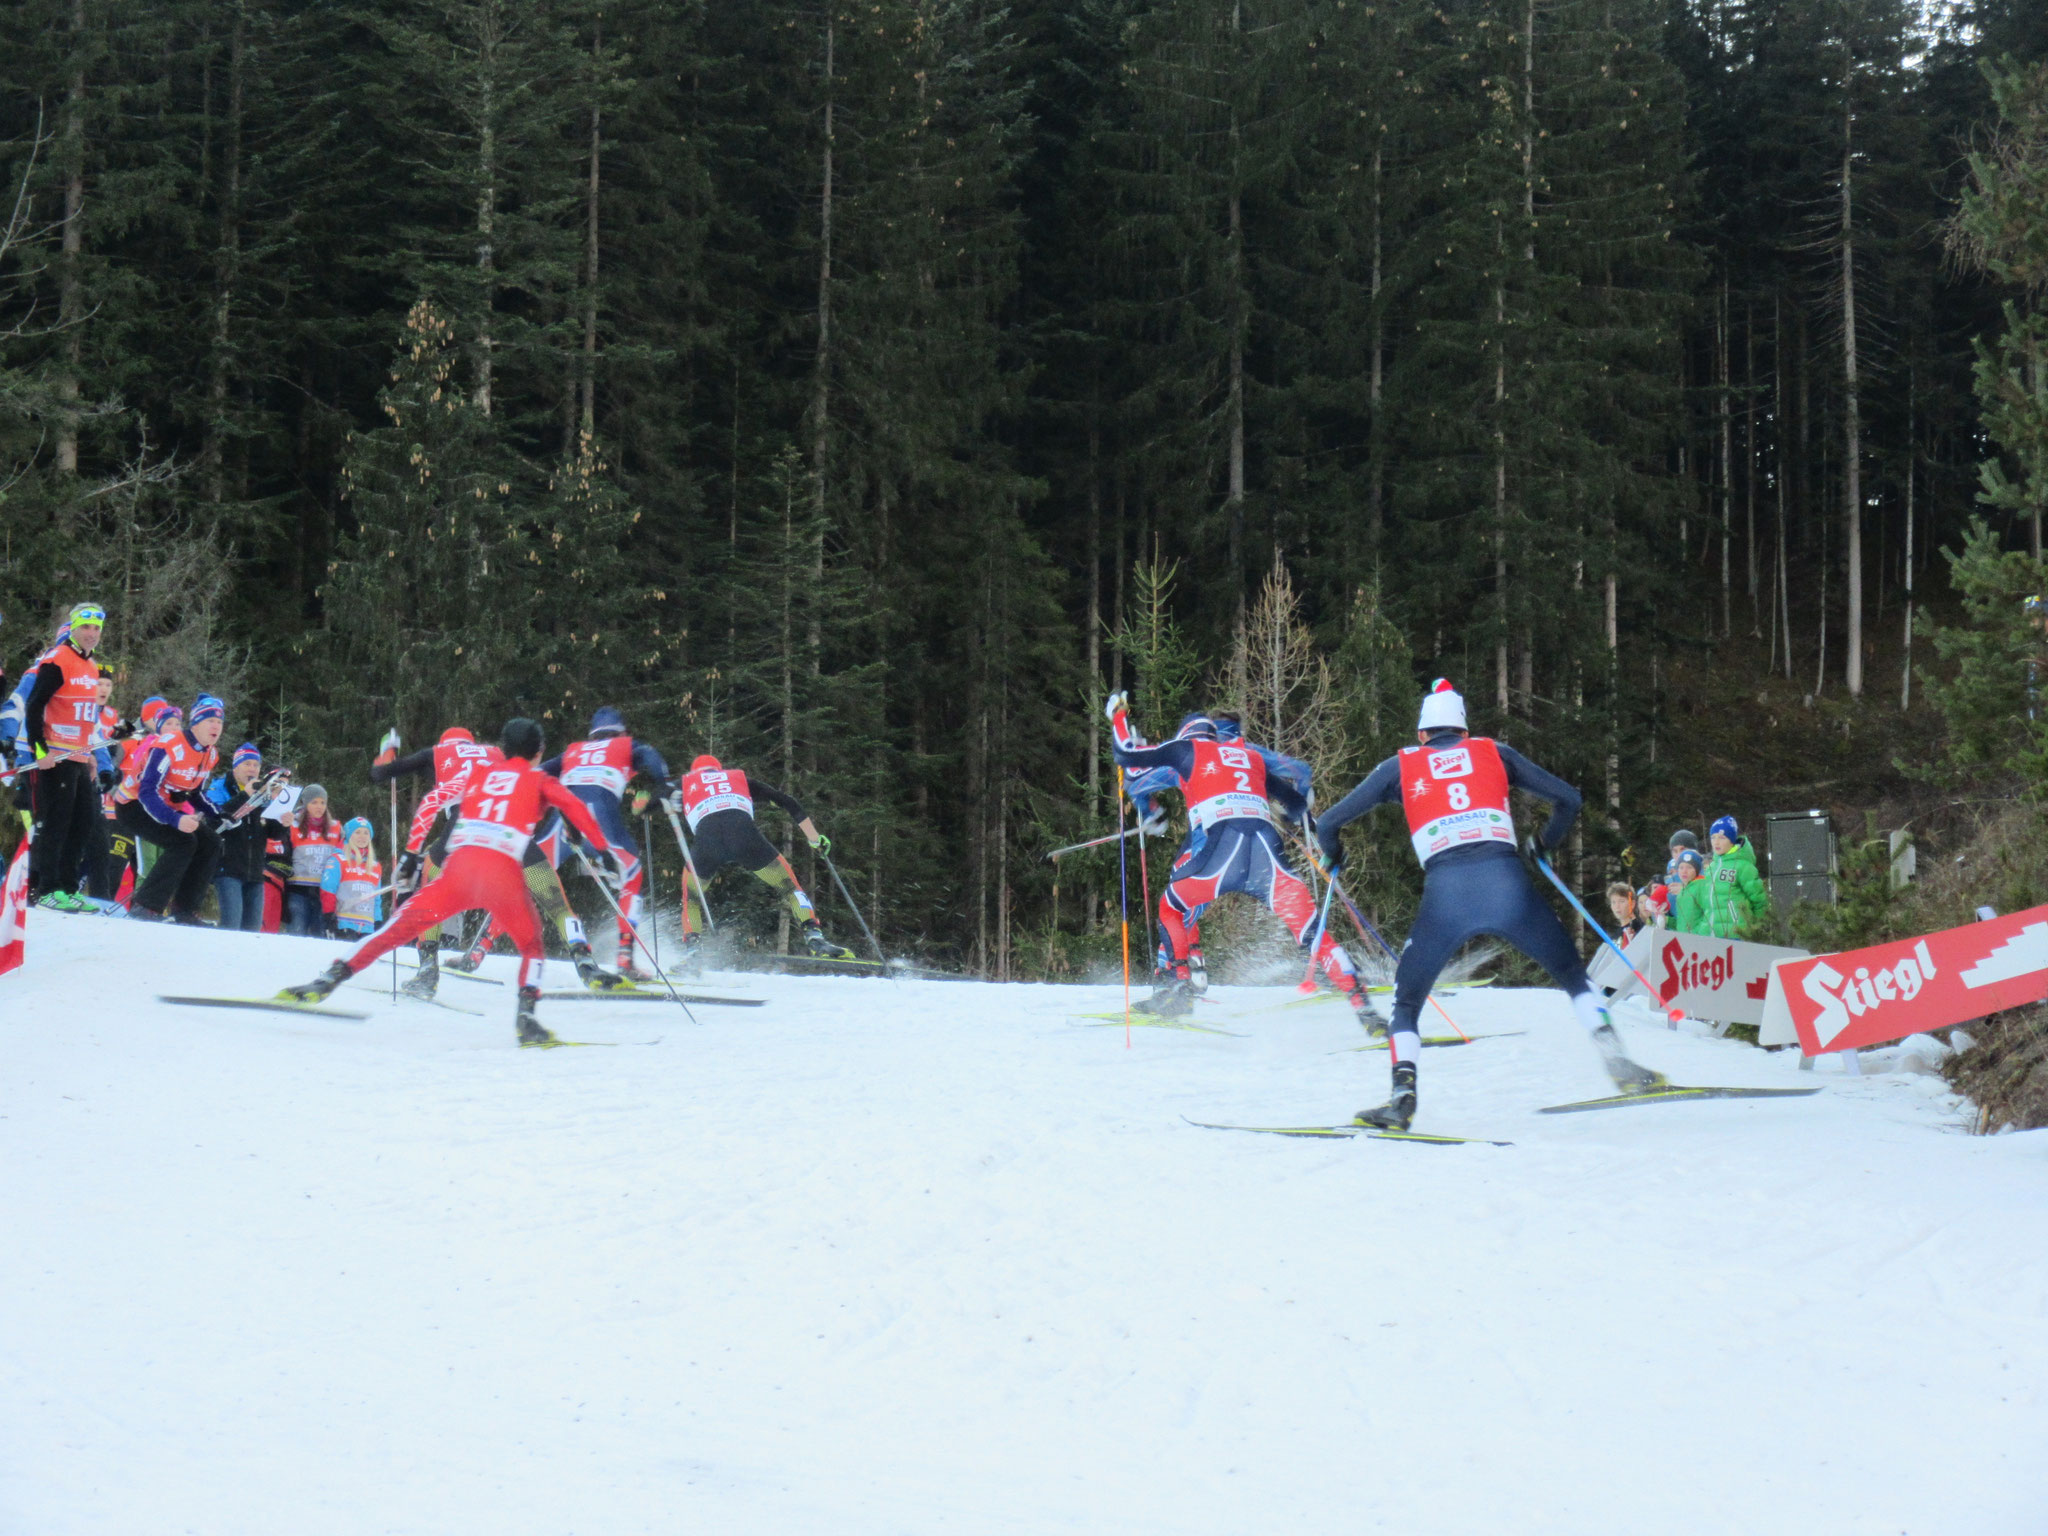 The FIS World Cup Nordic Combined in Ramsau each December